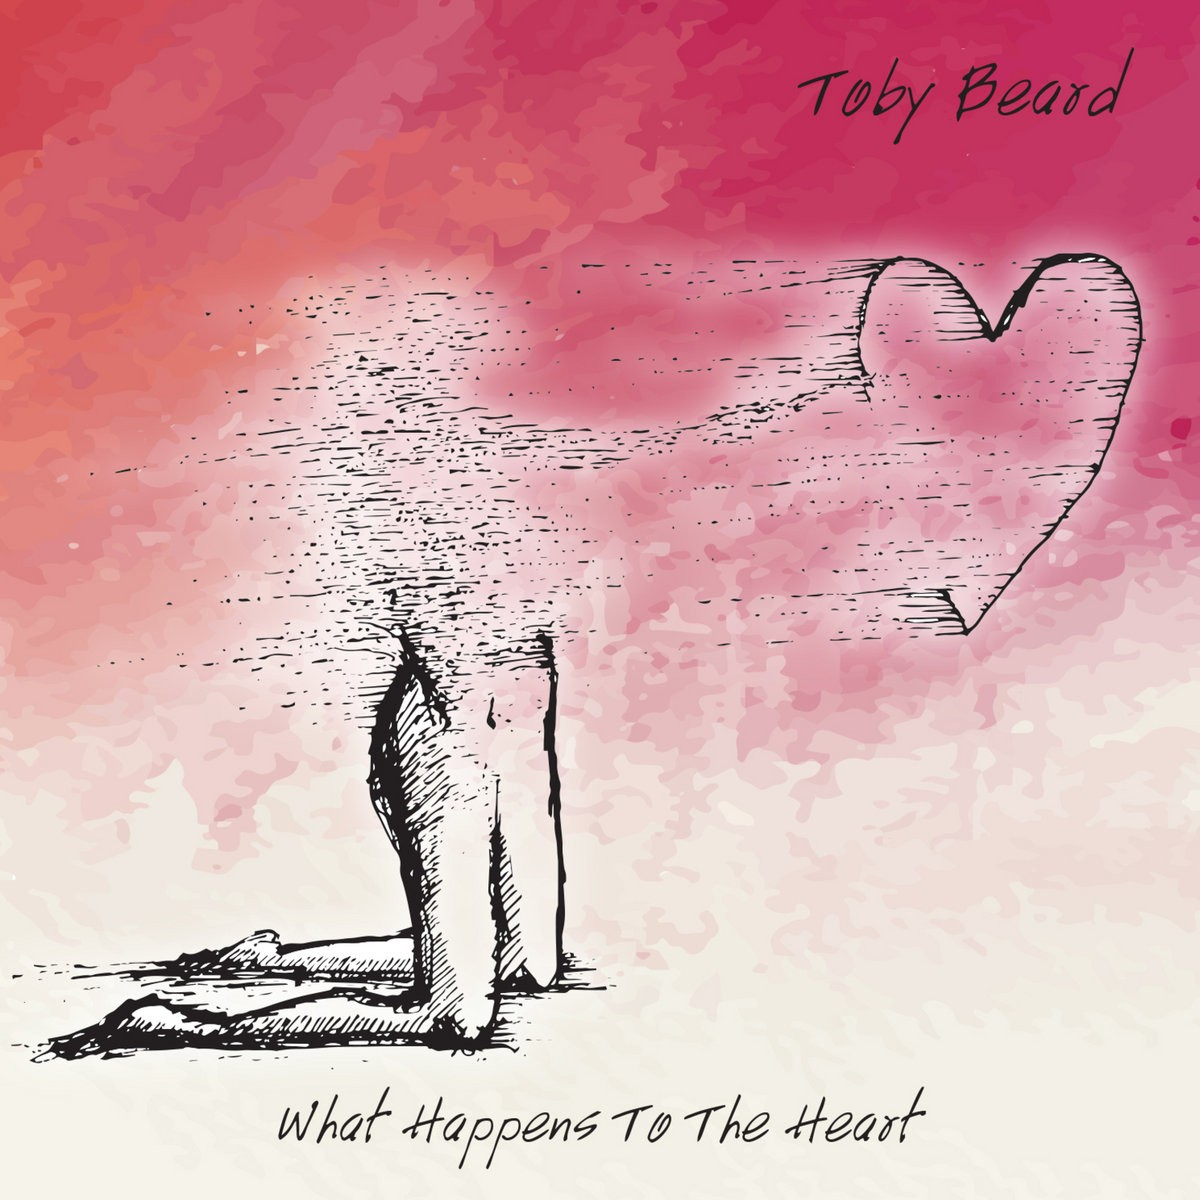 Toby Beard - What Happens To The Heart